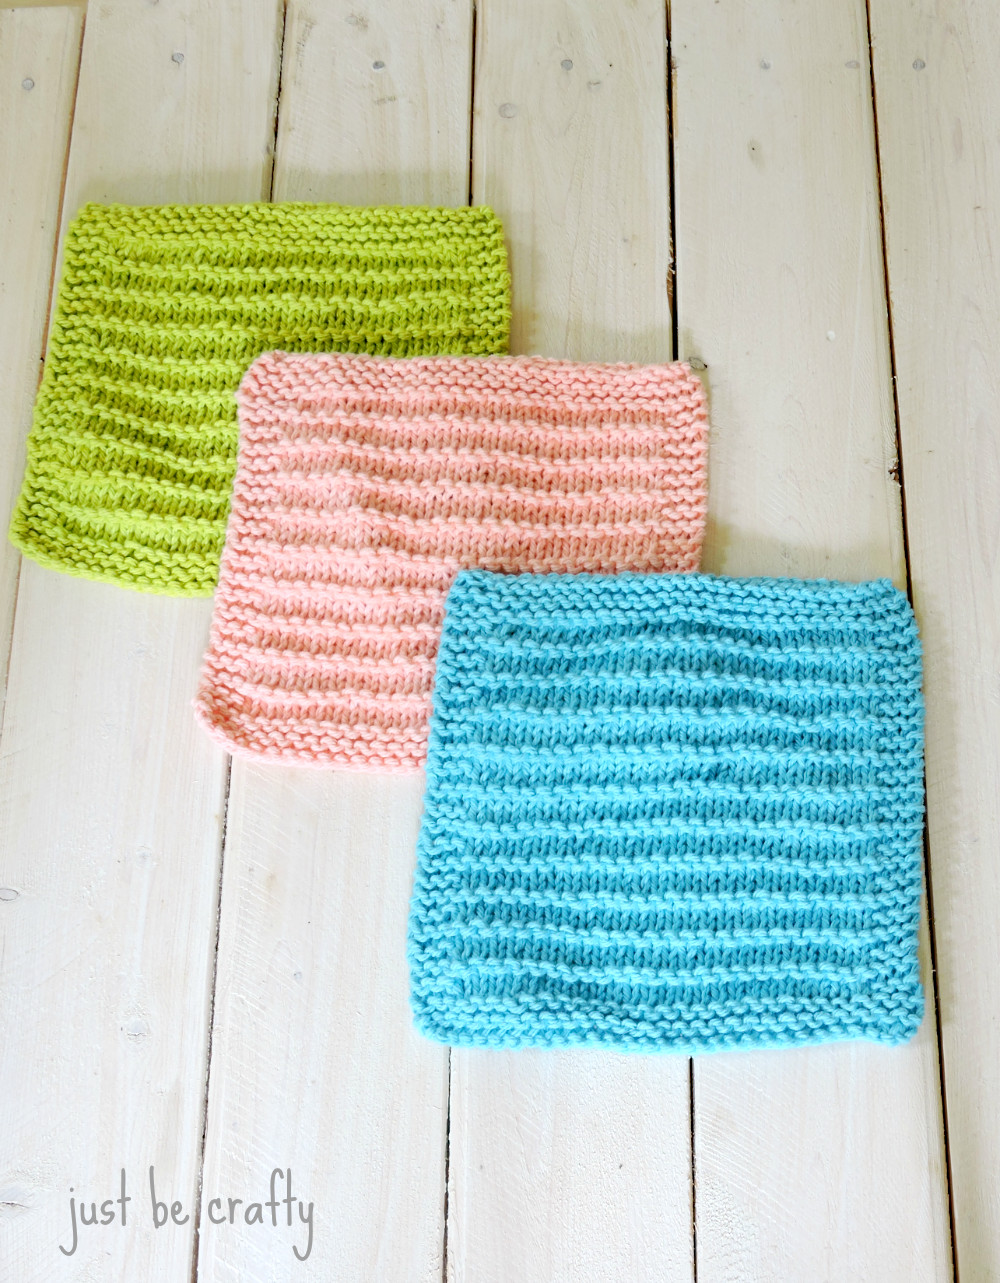 Crochet Dishcloth Pattern Unique Farmhouse Kitchen Knitted Dishcloths Just Be Crafty Of Marvelous 42 Pics Crochet Dishcloth Pattern